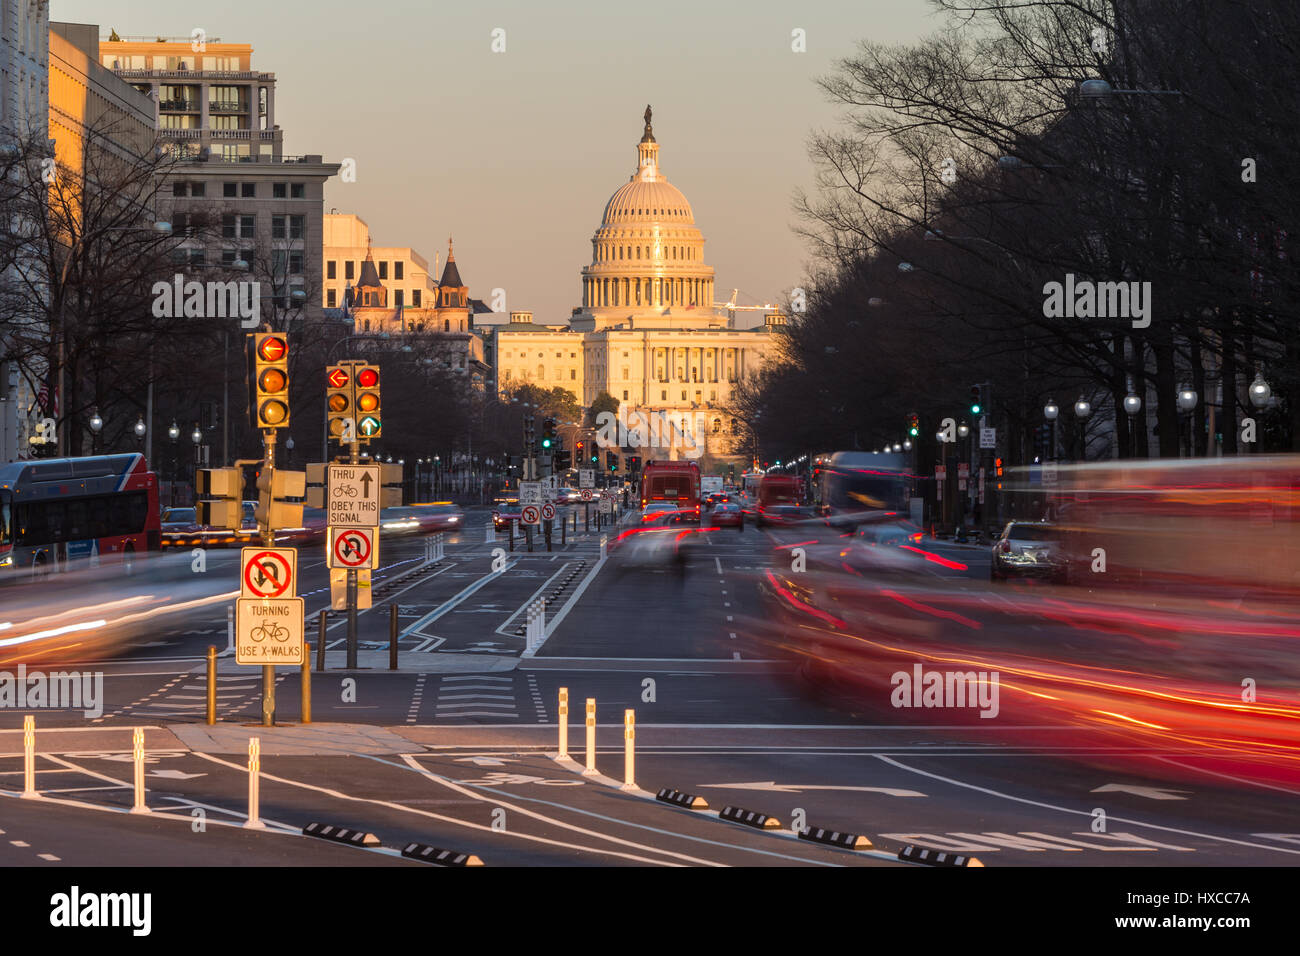 Traffic creates light trails and motion blurs leading to the US Capitol Building on Pennsylvania Avenue in Washington, - Stock Image